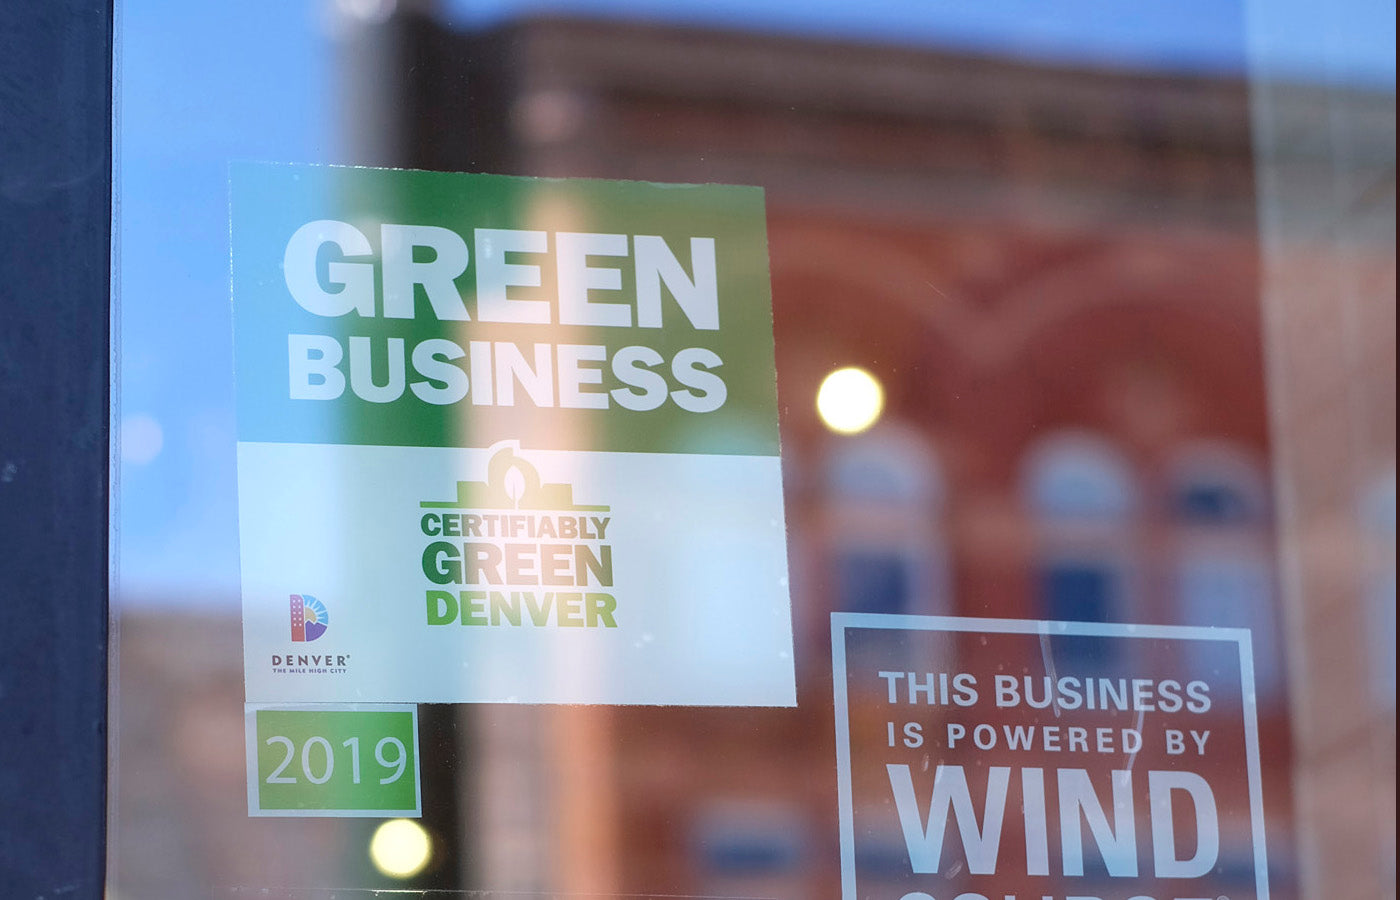 green business decal on store front